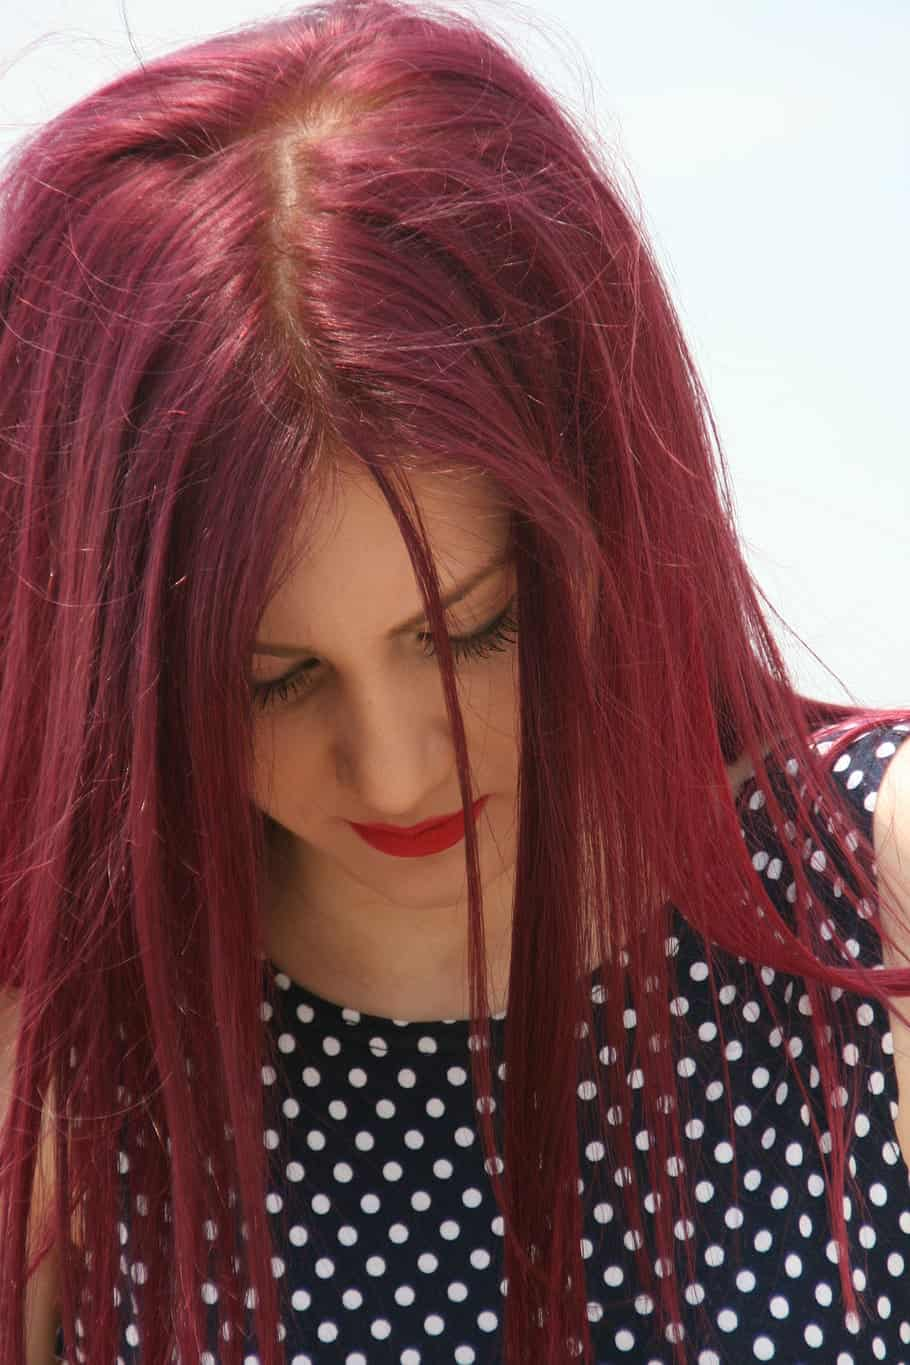 A Tint Of Violet Blends With Light Red Hair After Treatment.